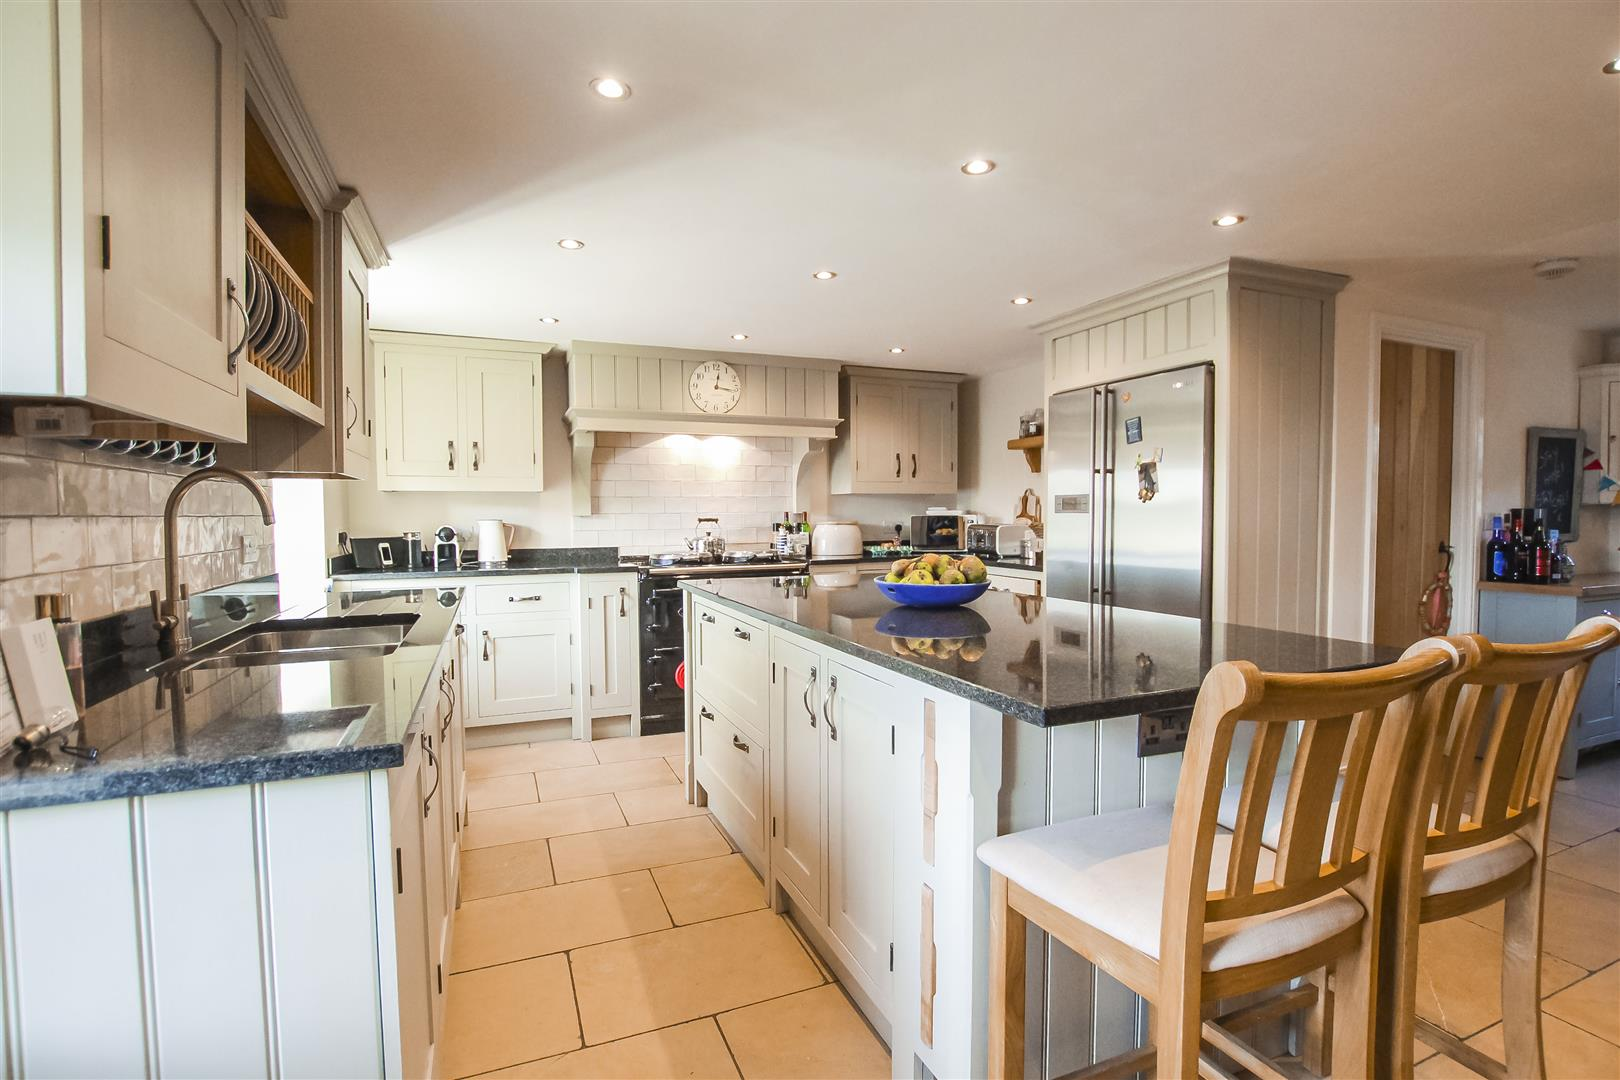 4 Bedroom Semi Detached Cottage For Sale - Main Image